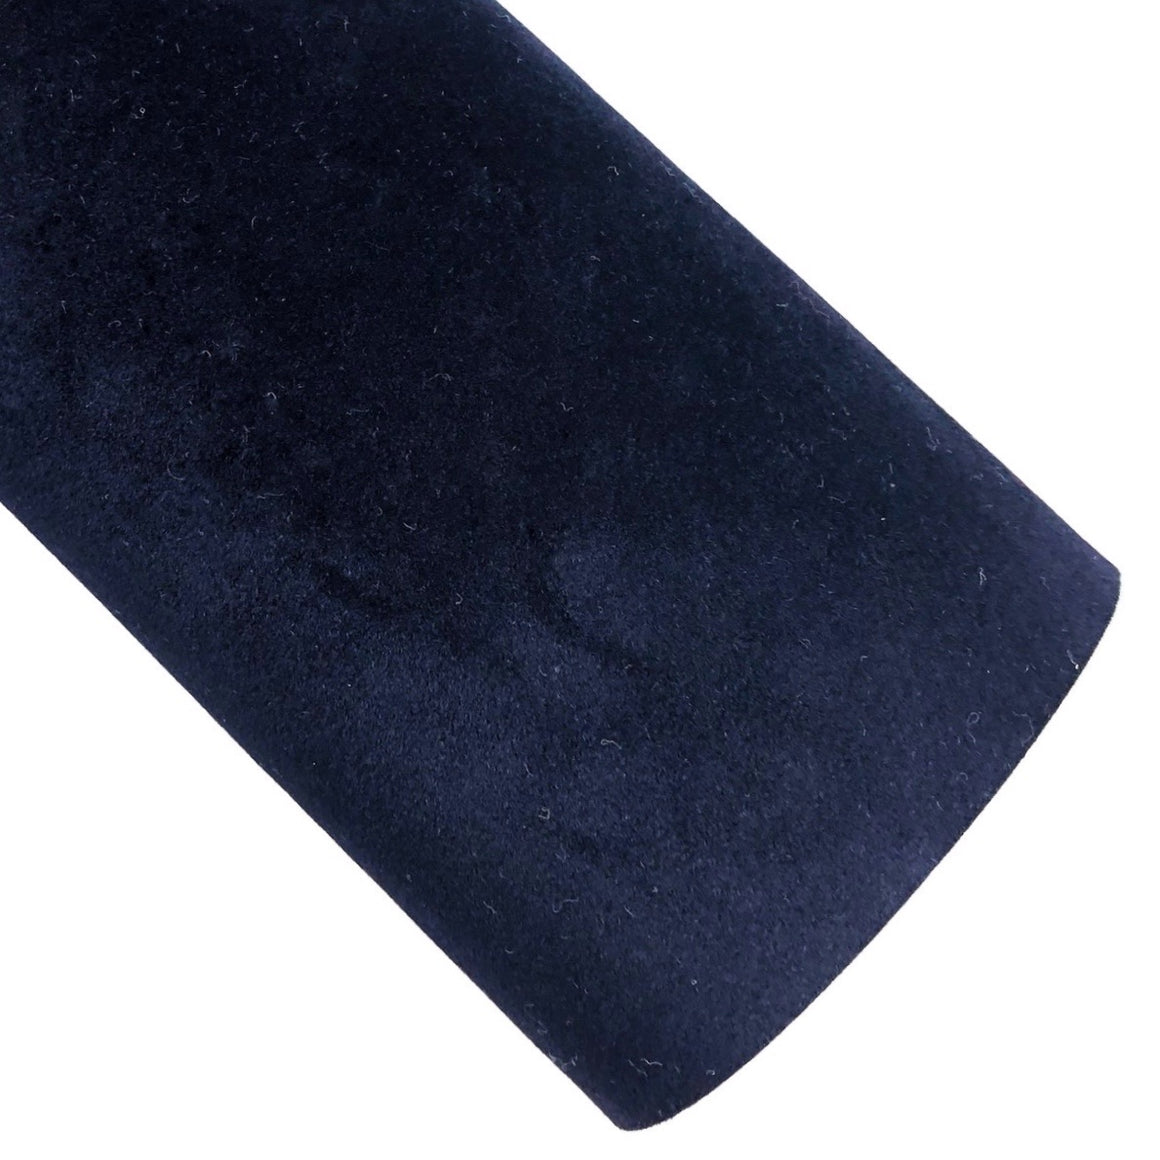 Richest Navy Velvet Vegan Leather